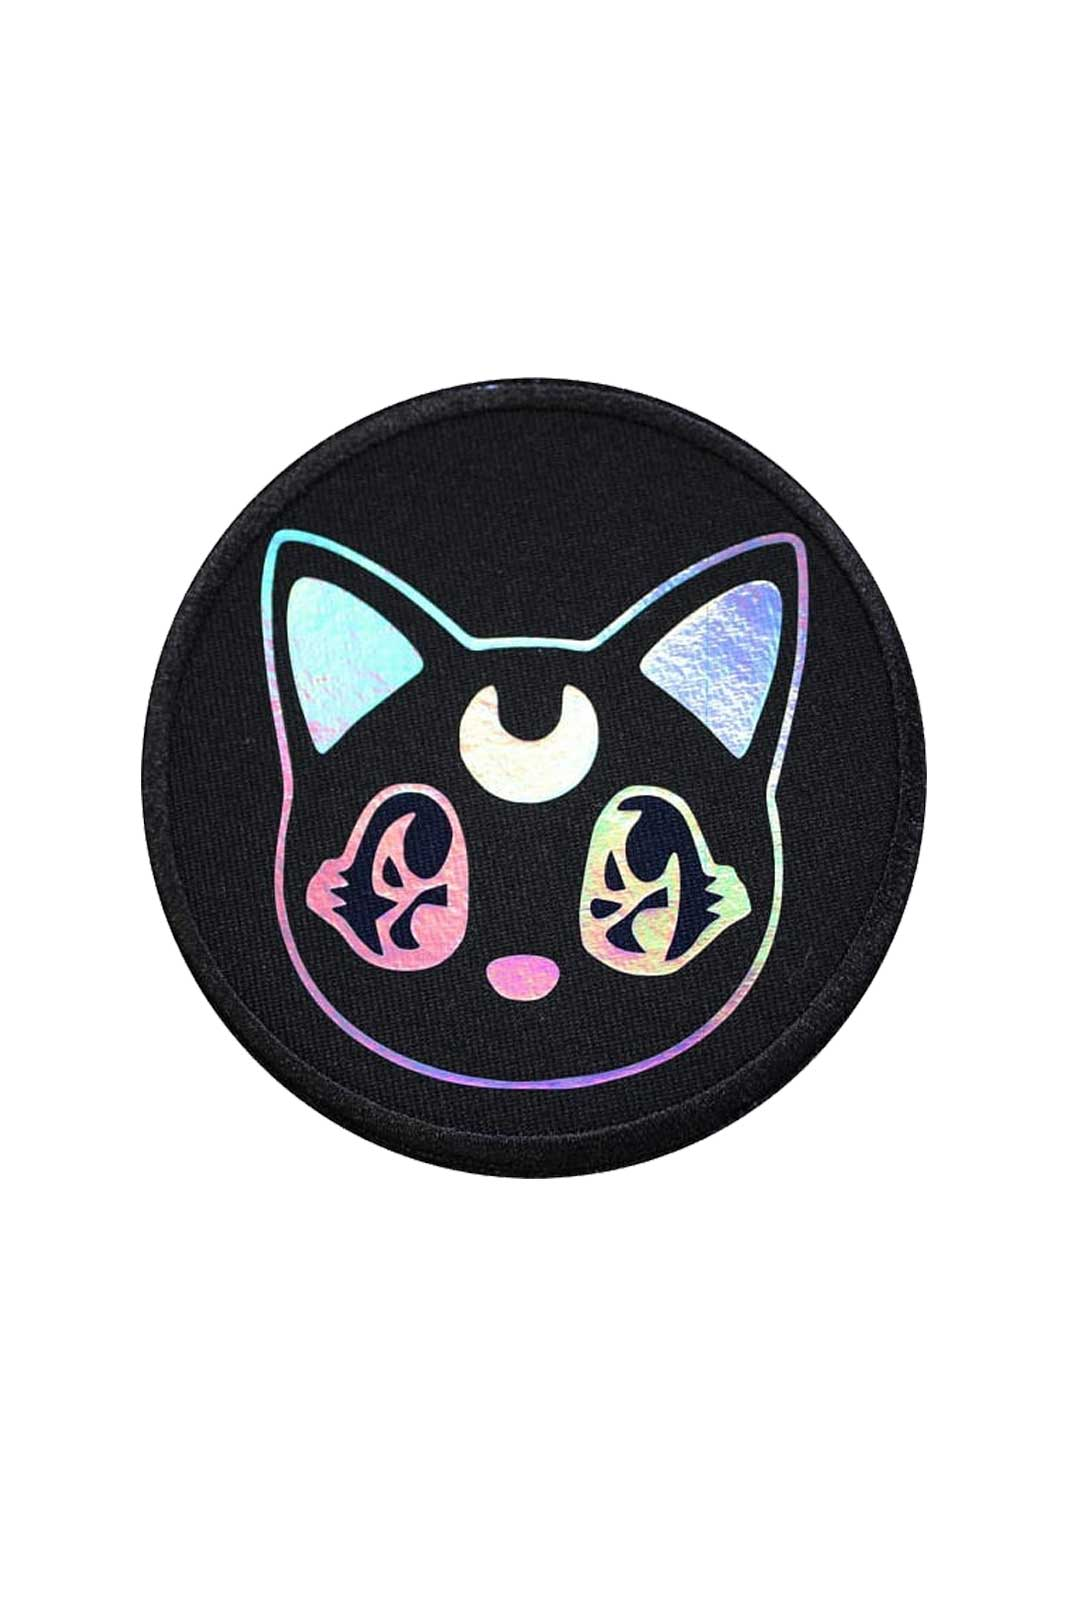 extreme largeness holographic kawaii kitten patch